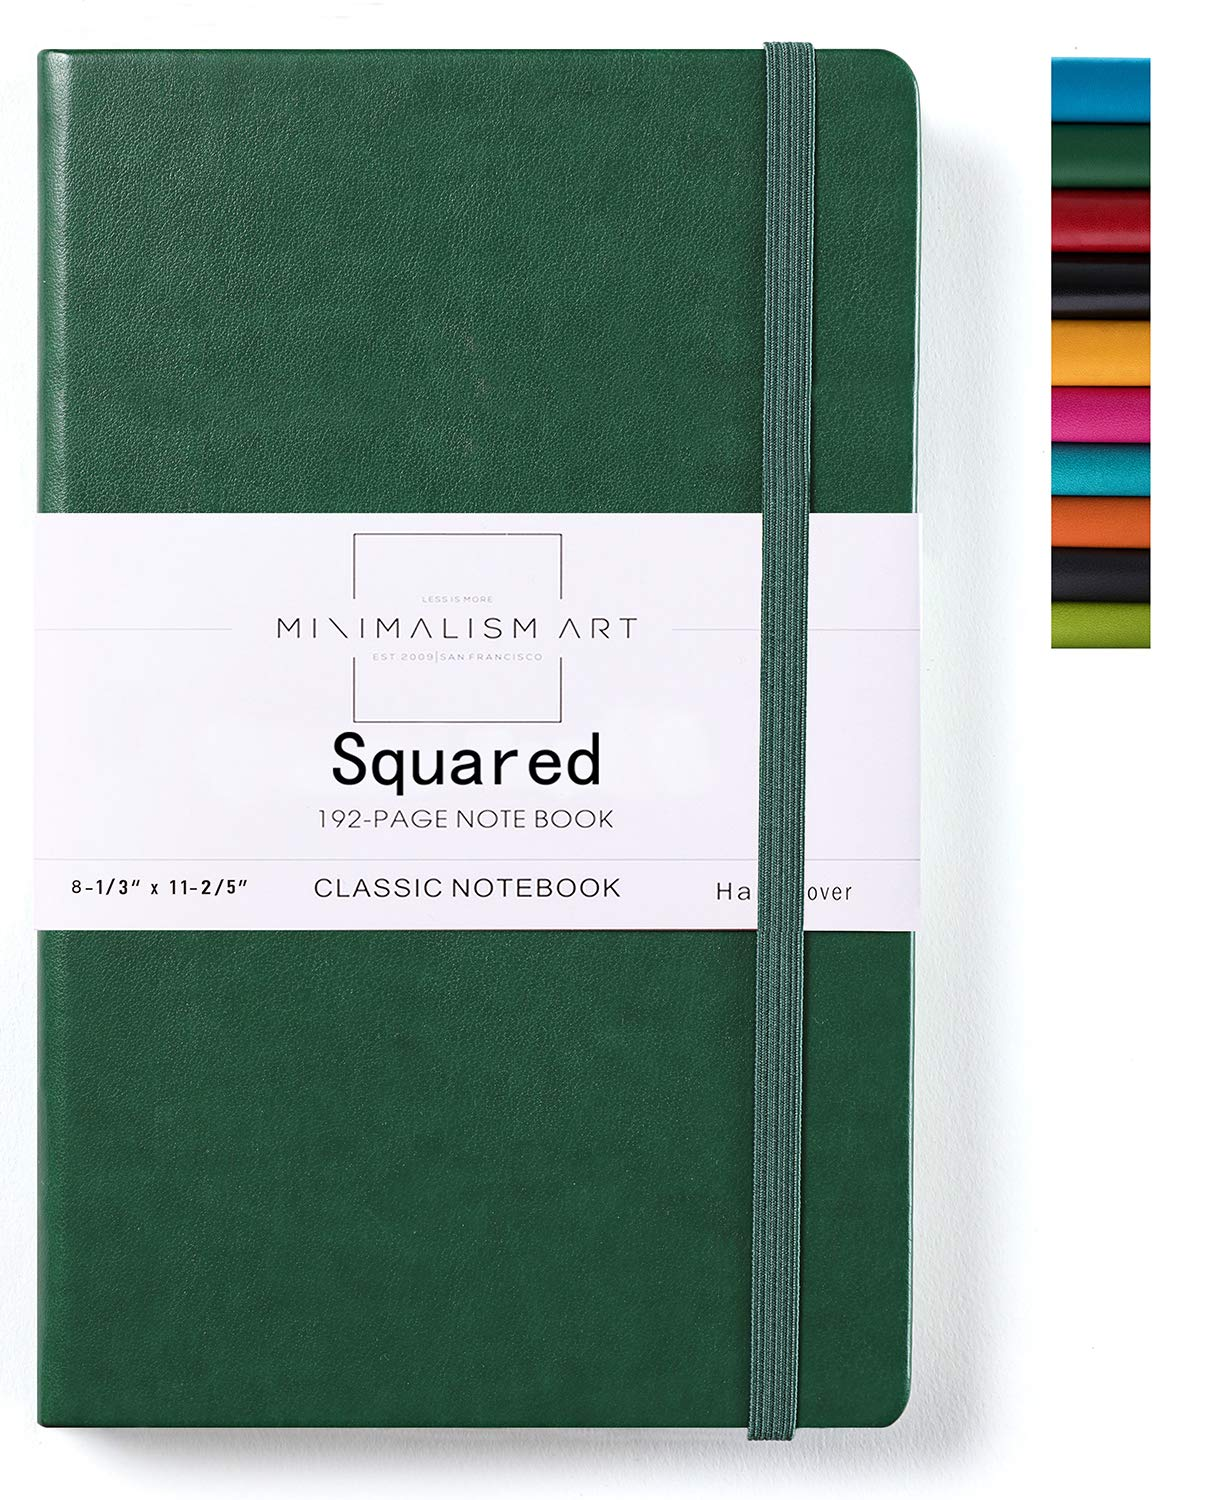 Minimalism Art, Classic Notebook Journal, A4 Size 8.3 X 11.4 inches, Green, Squared Grid Page, 192 Pages, Hard Cover, Fine PU Leather, Inner Pocket, Quality Paper-100gsm, Designed in San Francisco